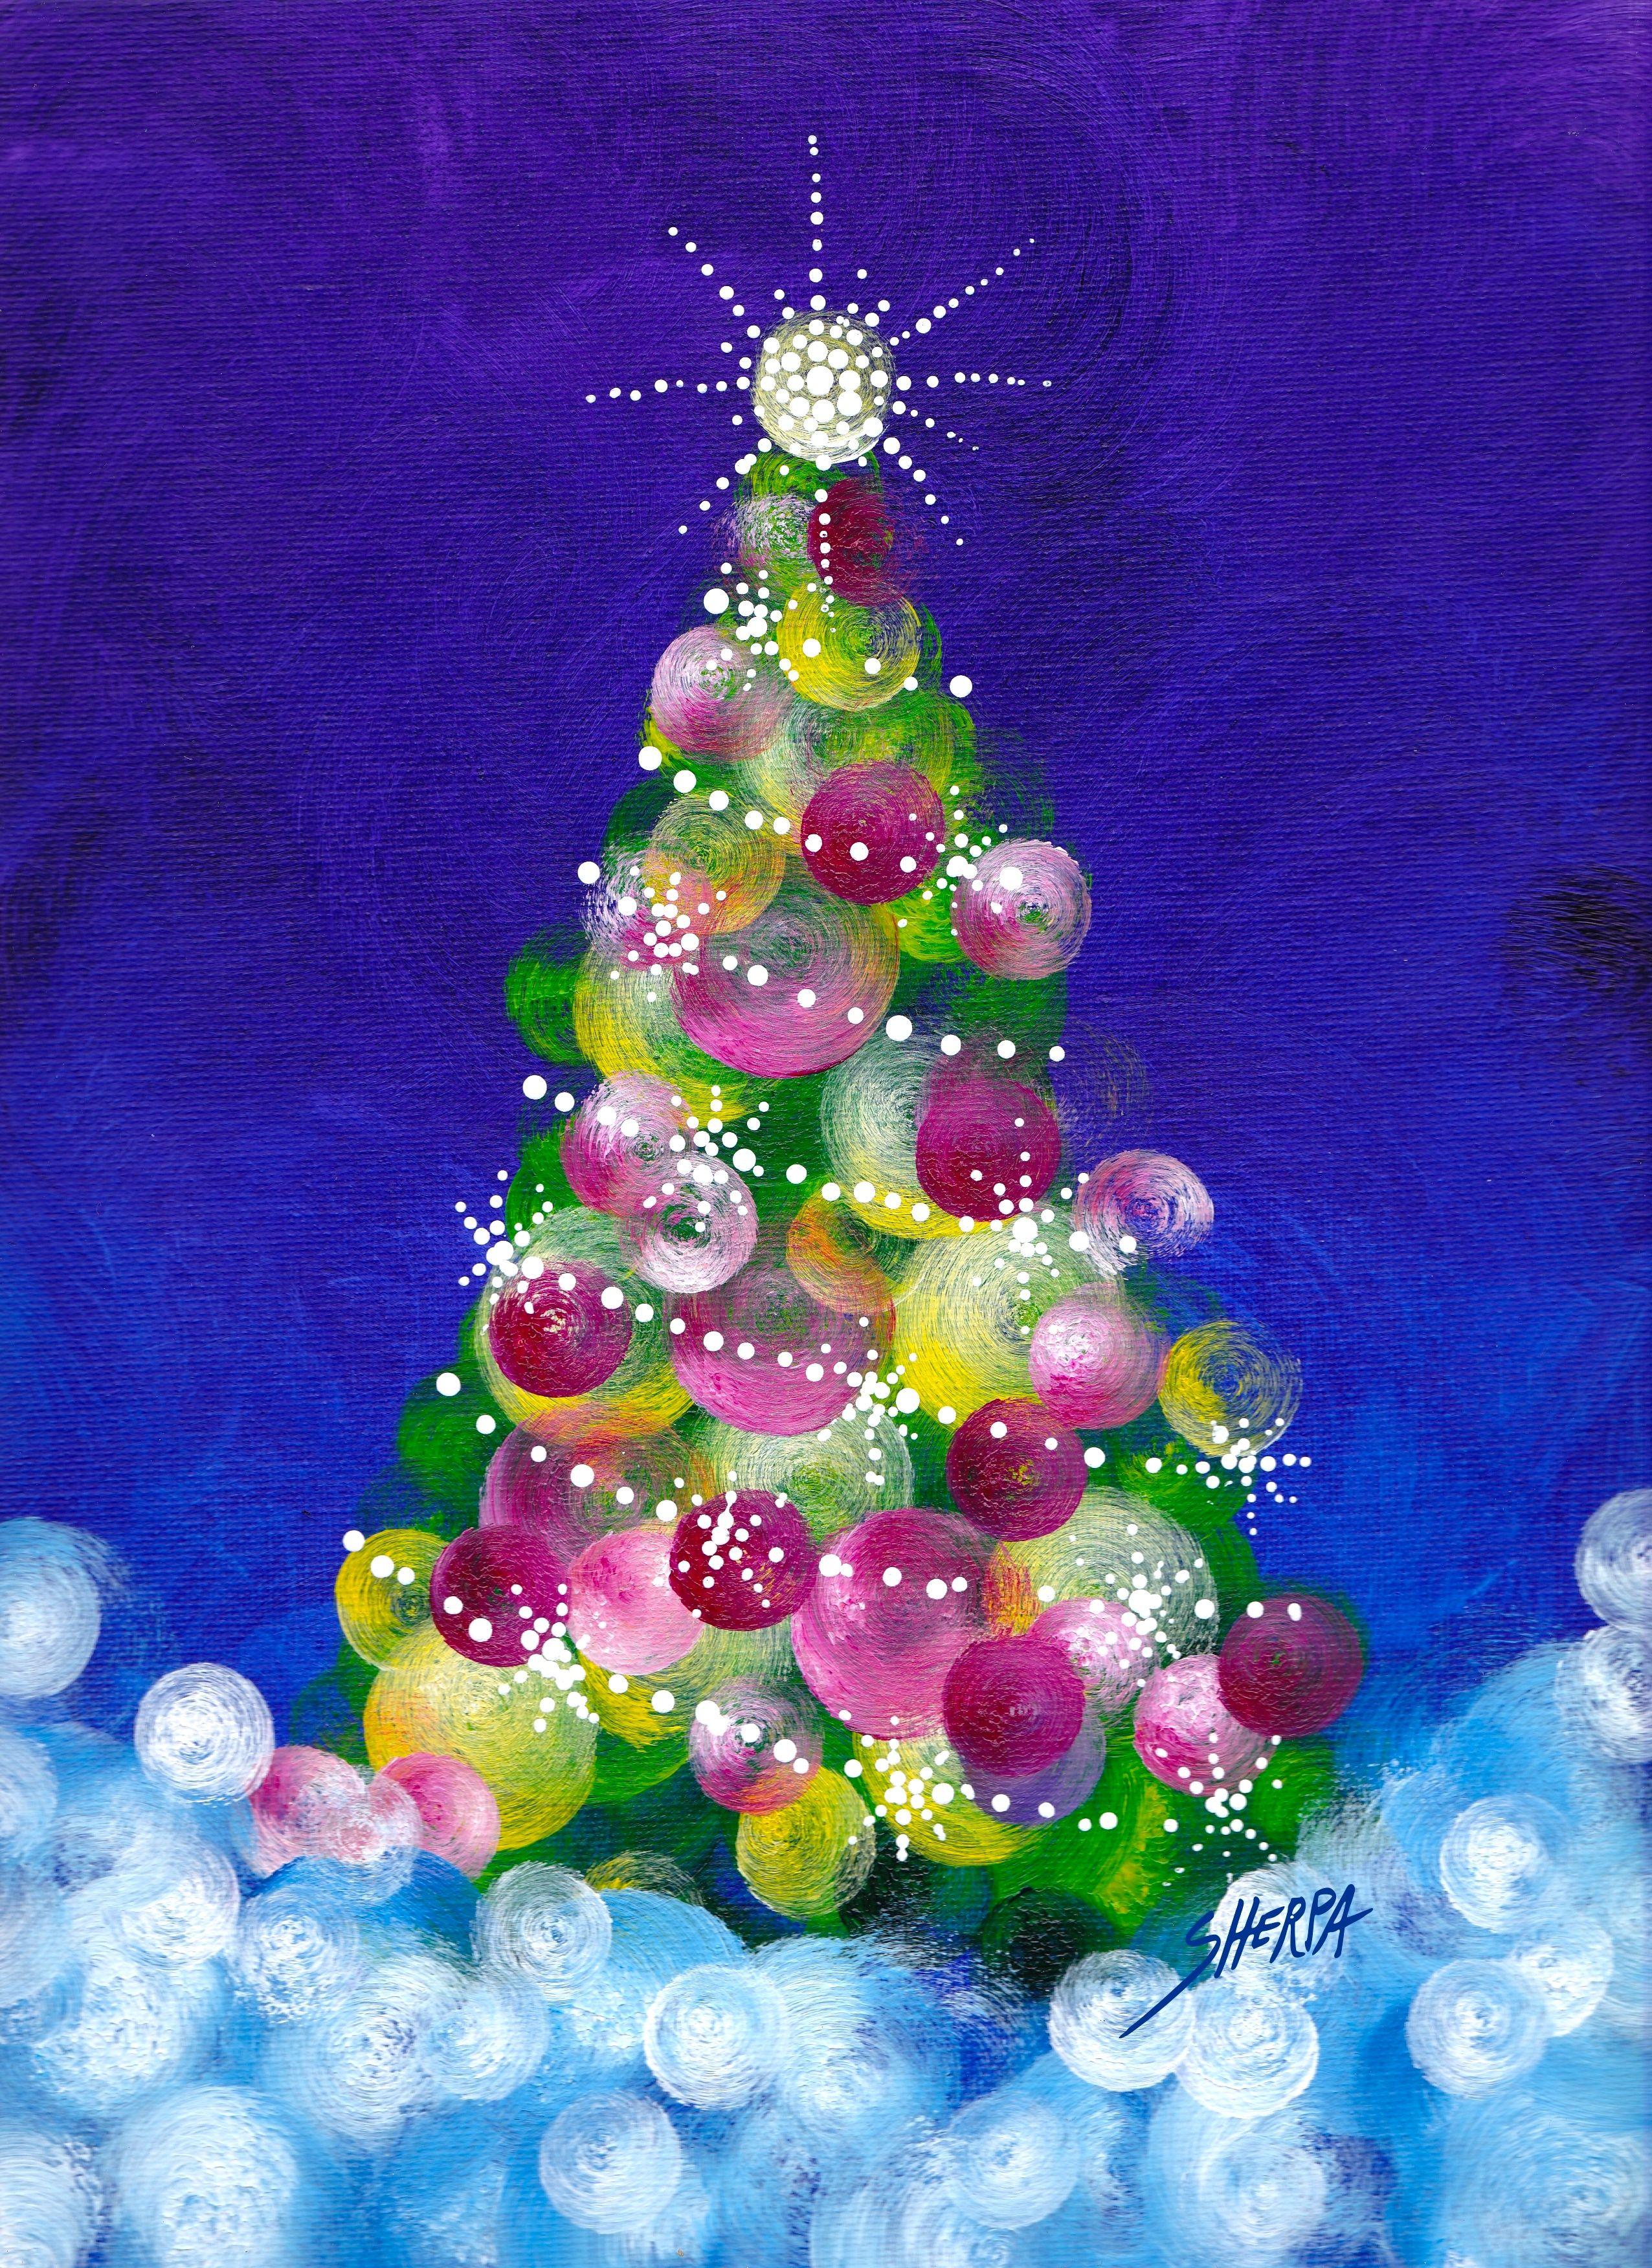 Easy Acrylic Christmas Tree Painting Idea For Beginners Step By